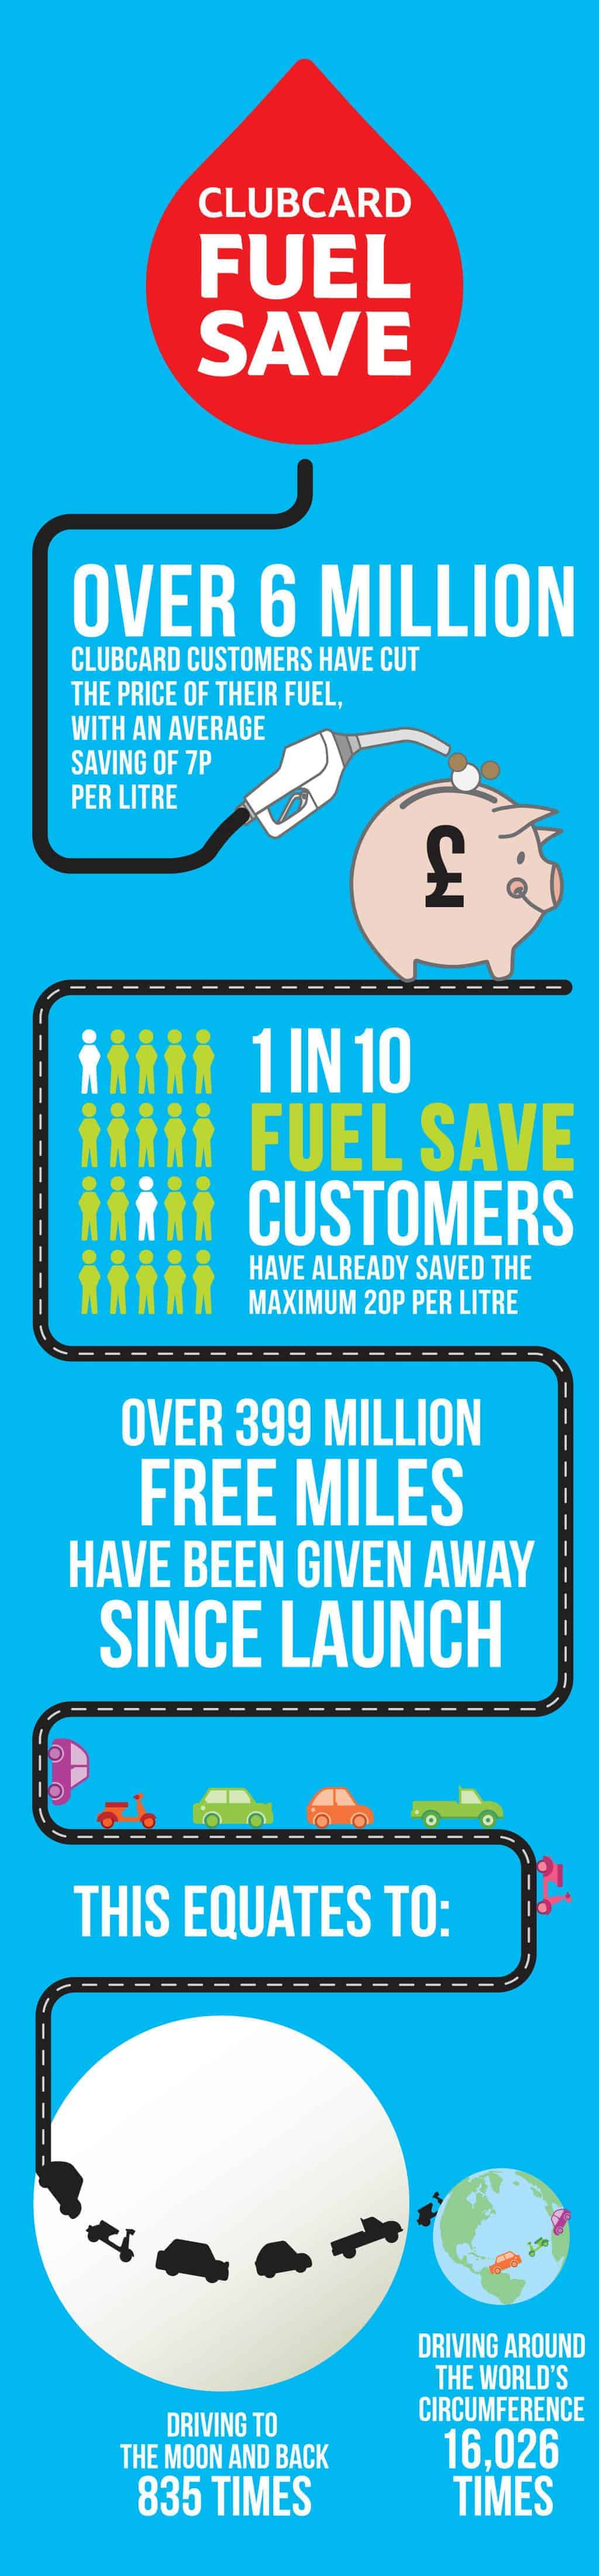 Our Fuel Save day trip to Snettisham Park